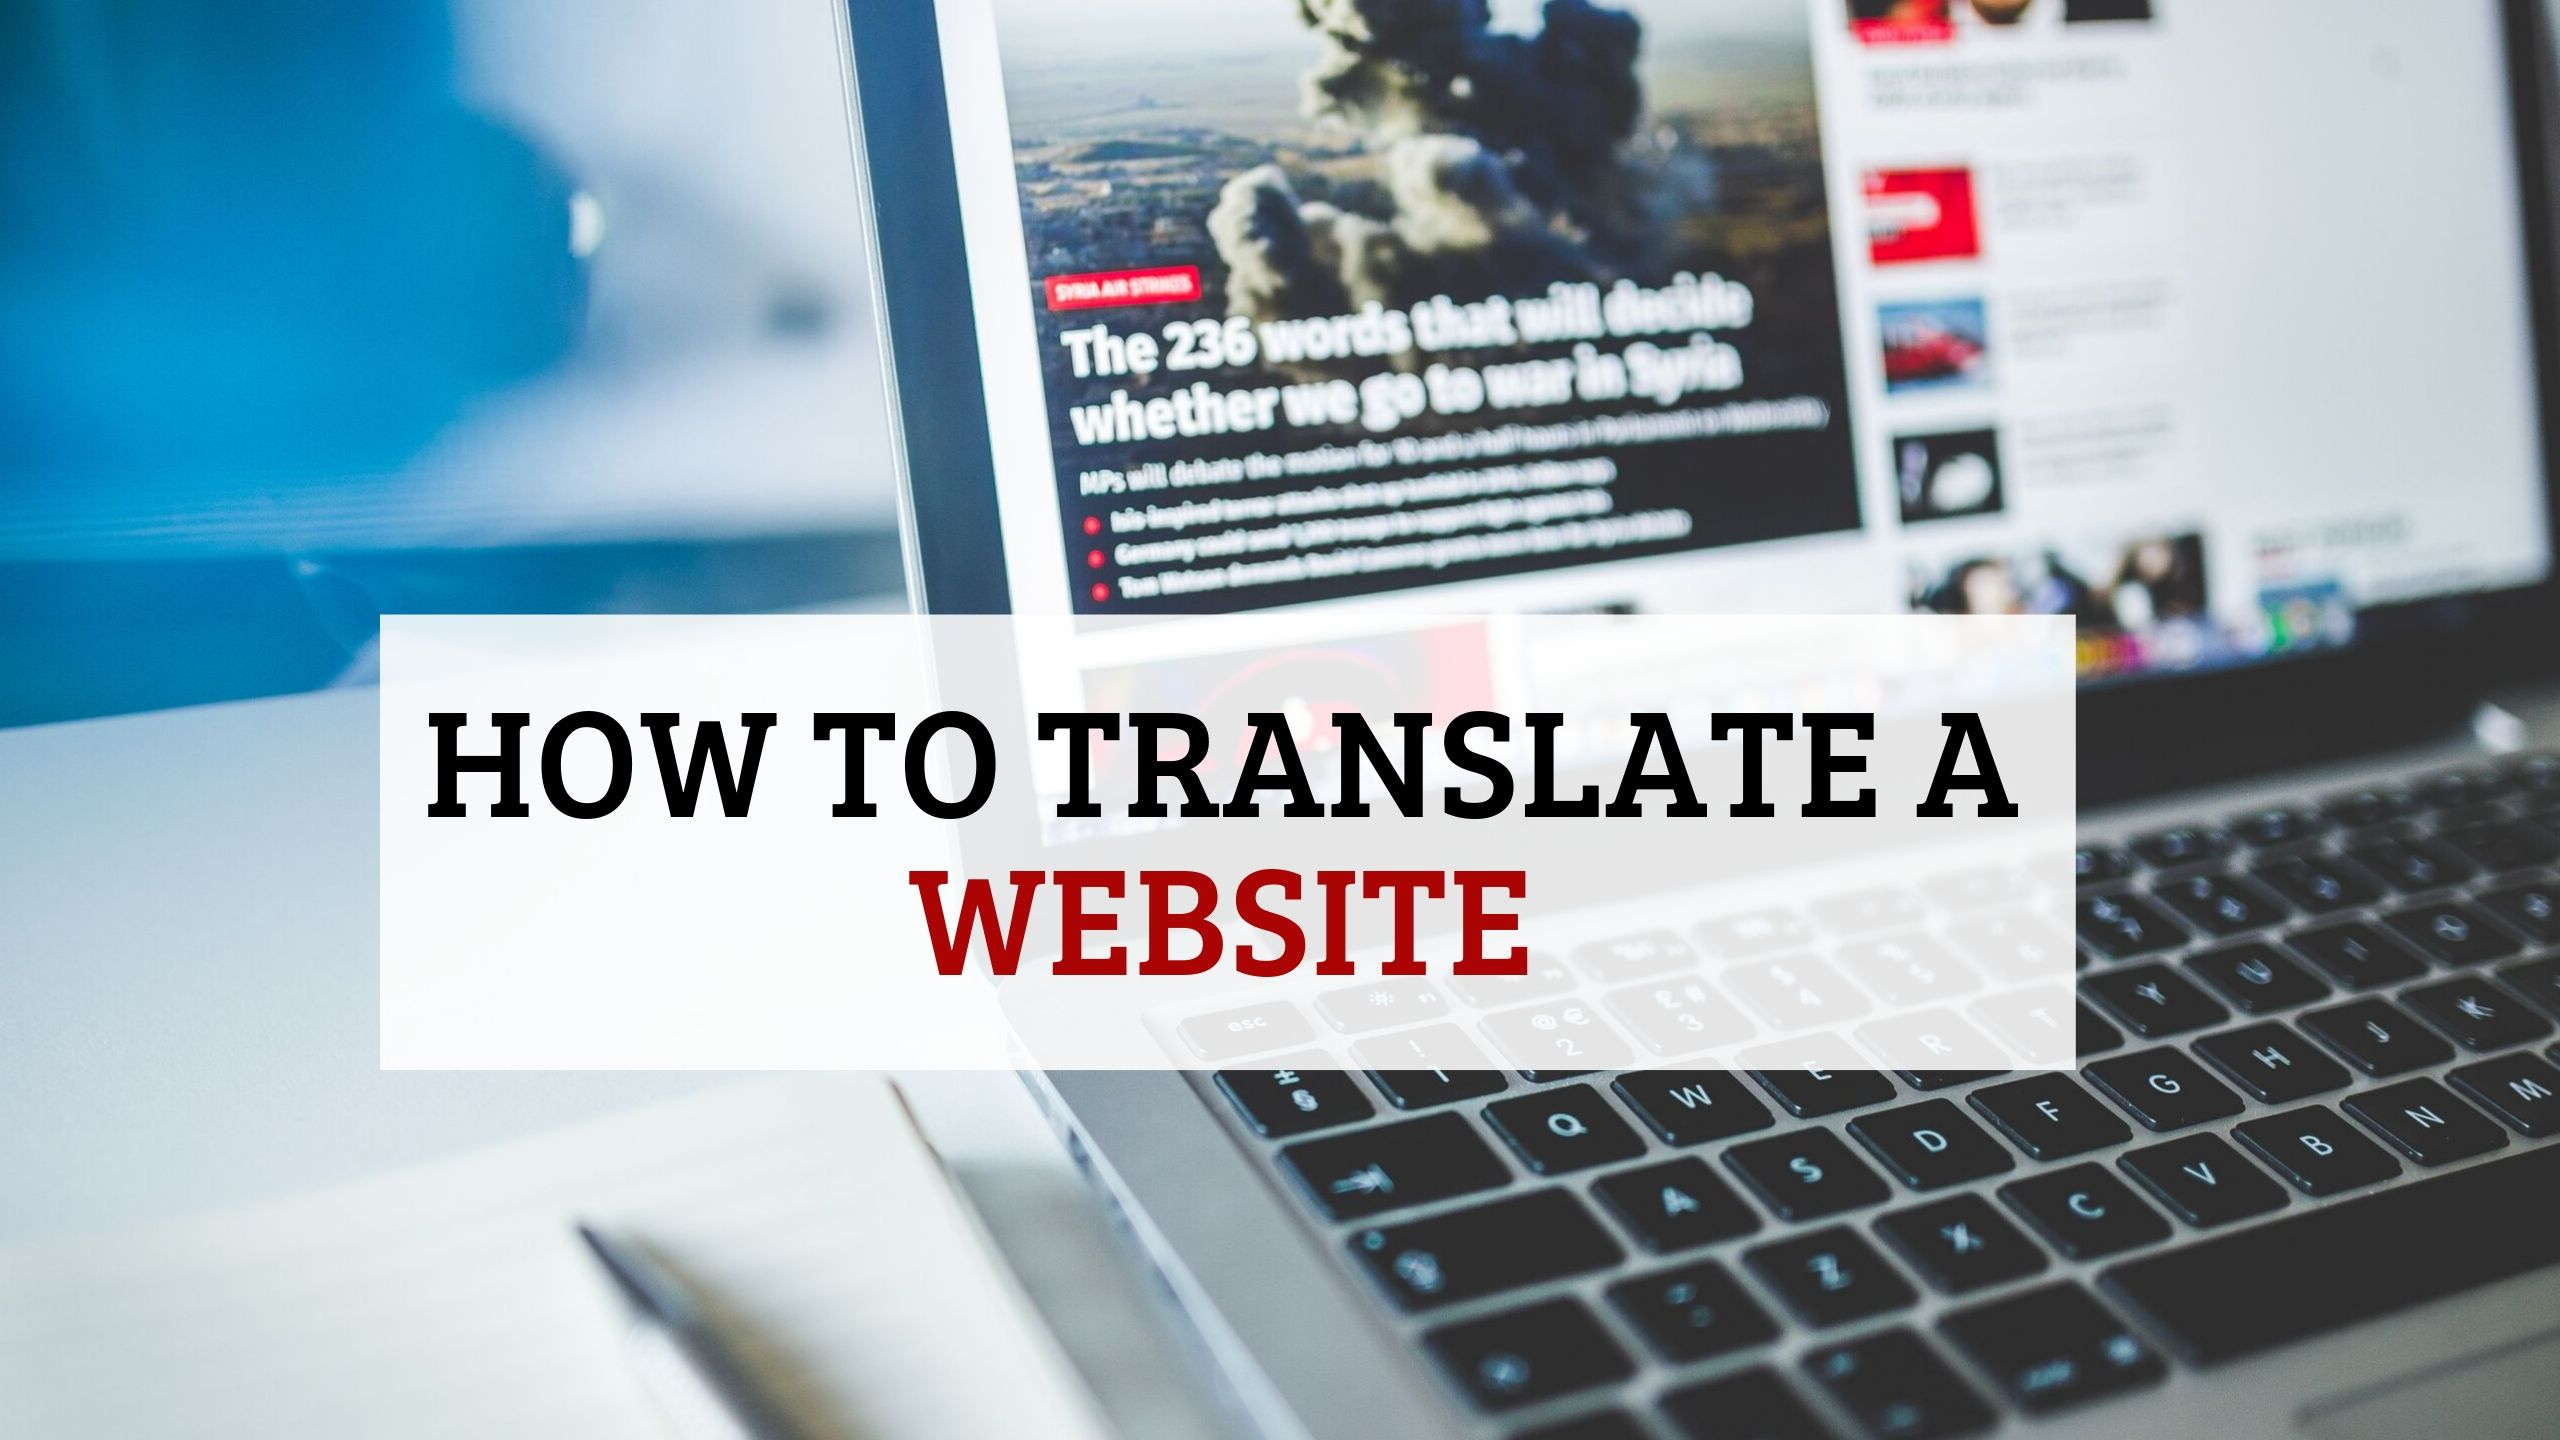 Translate-a-website